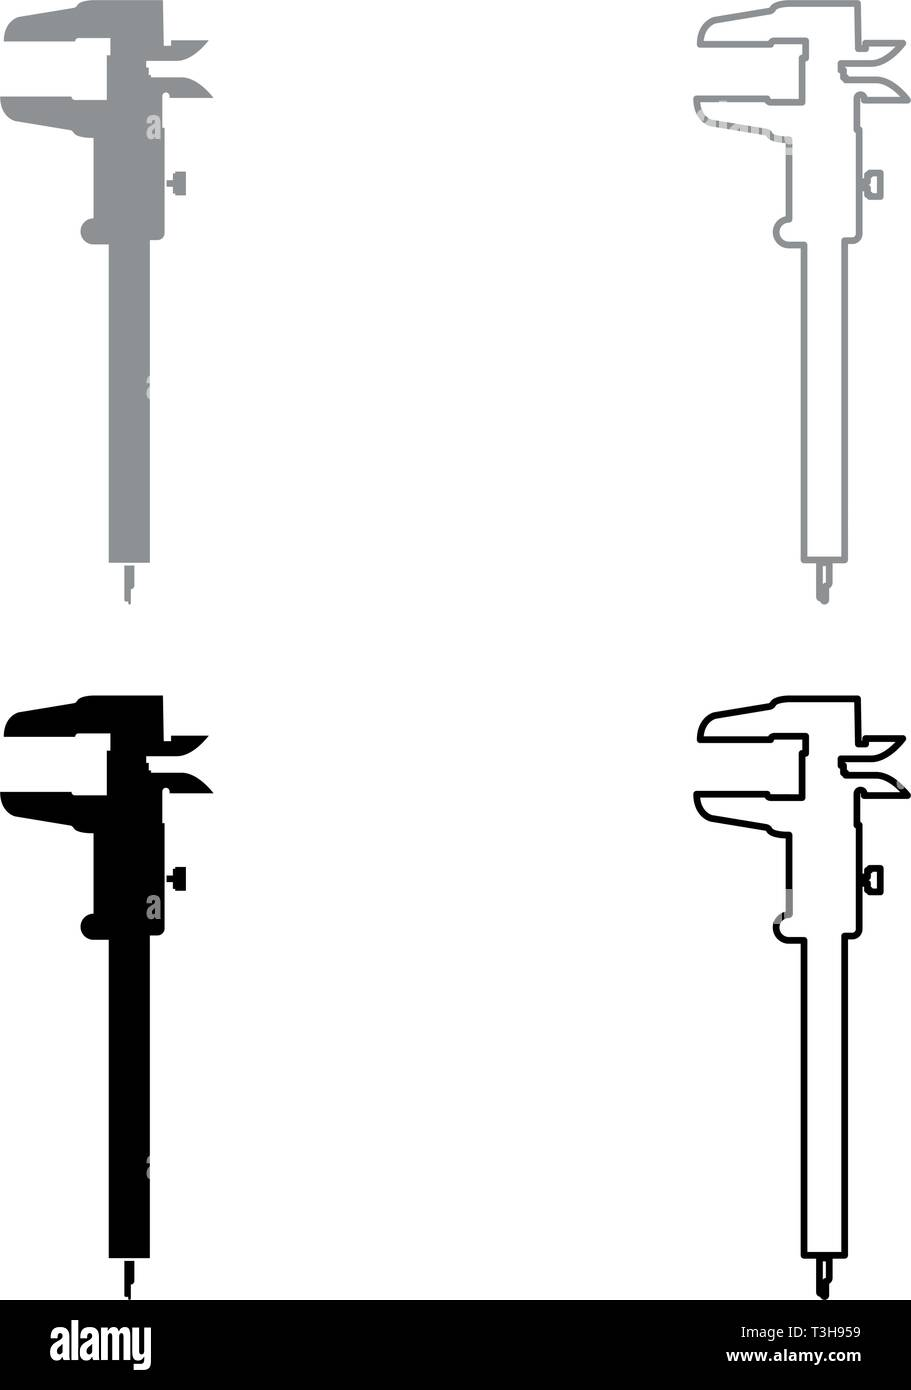 caliper hand caliper sliding caliper vernier caliper caliper gage slide  gage trammel icon set black grey color vector illustration flat style simple